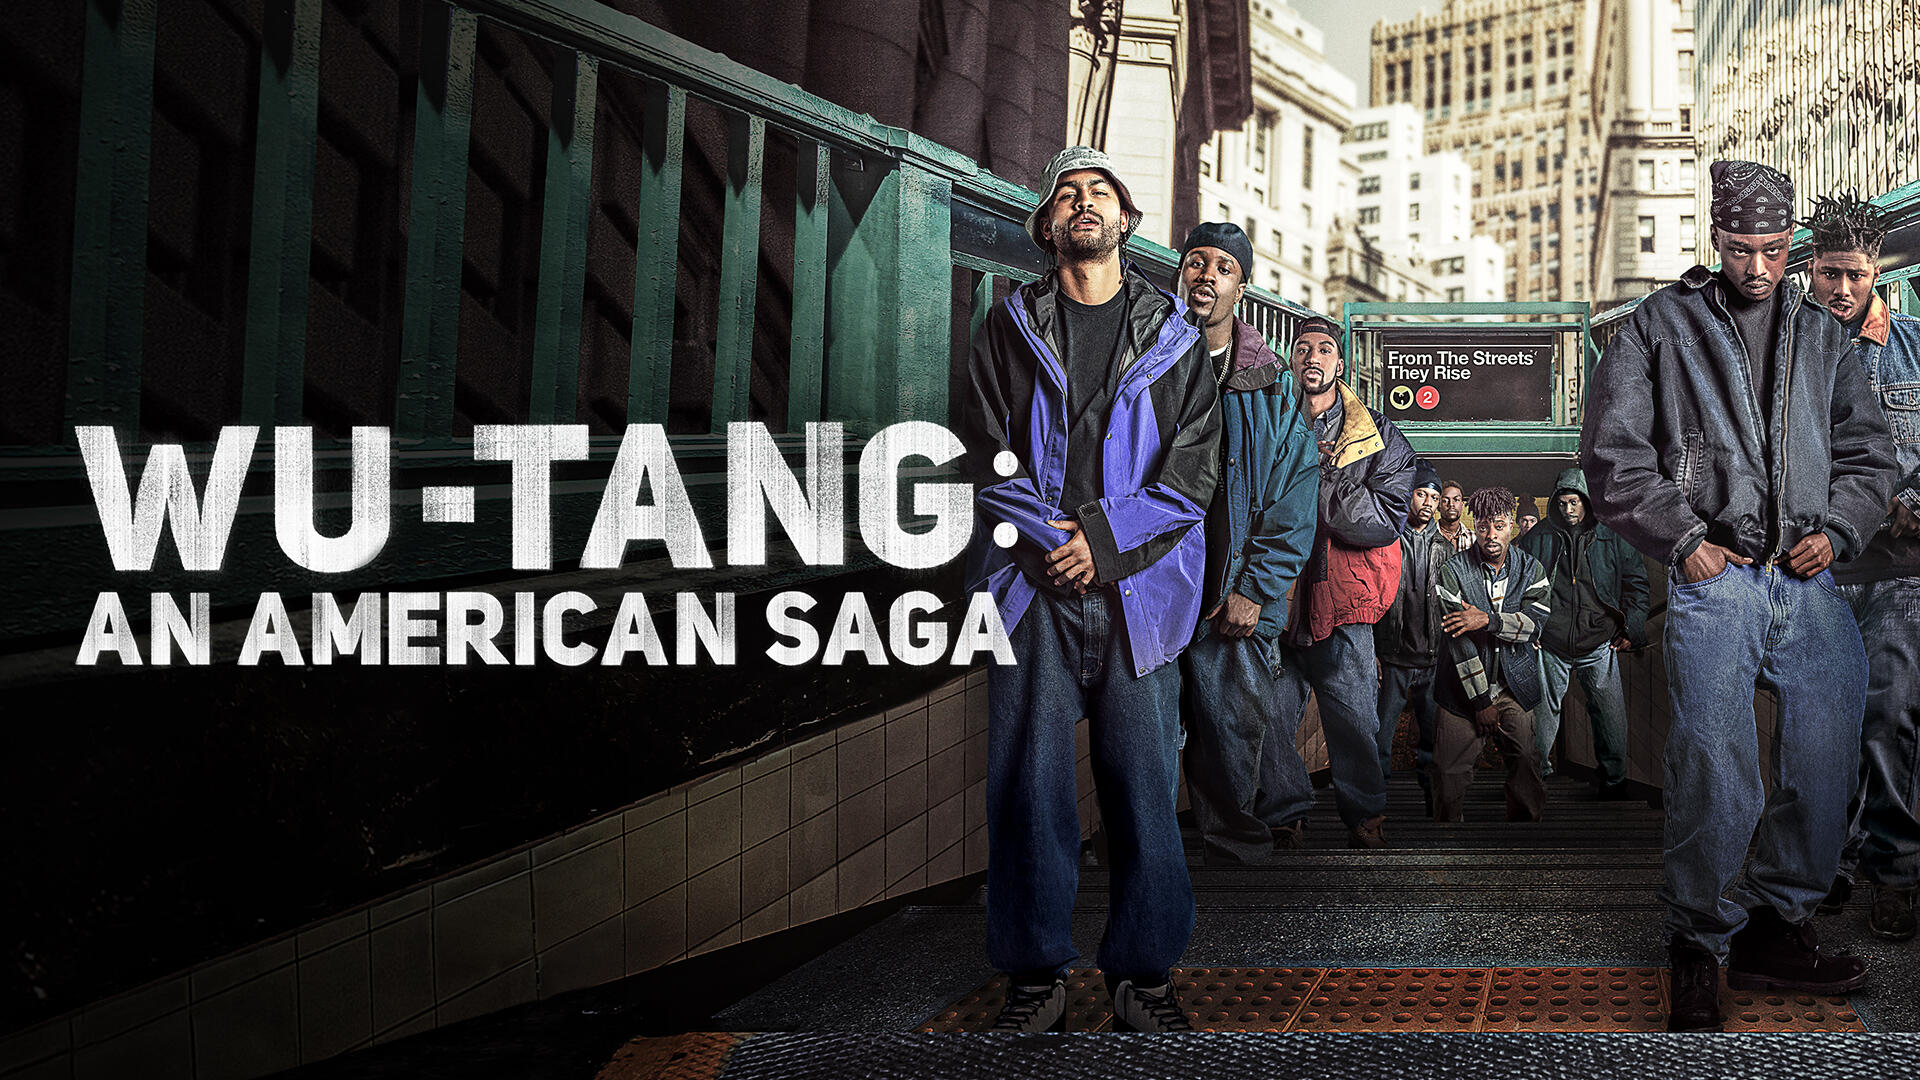 Wu-Tang: An American Saga -- The Clan is disillusioned with life in the projects, and Bobby knows that success in the music industry could be their ticket to better lives. But getting the Clan members to drop everything for music isn't easy. The resentment between Dennis, Sha, Power and Divine still runs deep, while the other Clan members struggle dealing with intercity life. This time around, Bobby is dedicated to authenticity and though he knows he can lead his crew through the challenges of the music business, the Clan's fractures may prove too much to overcome. (Courtesy of Hulu)